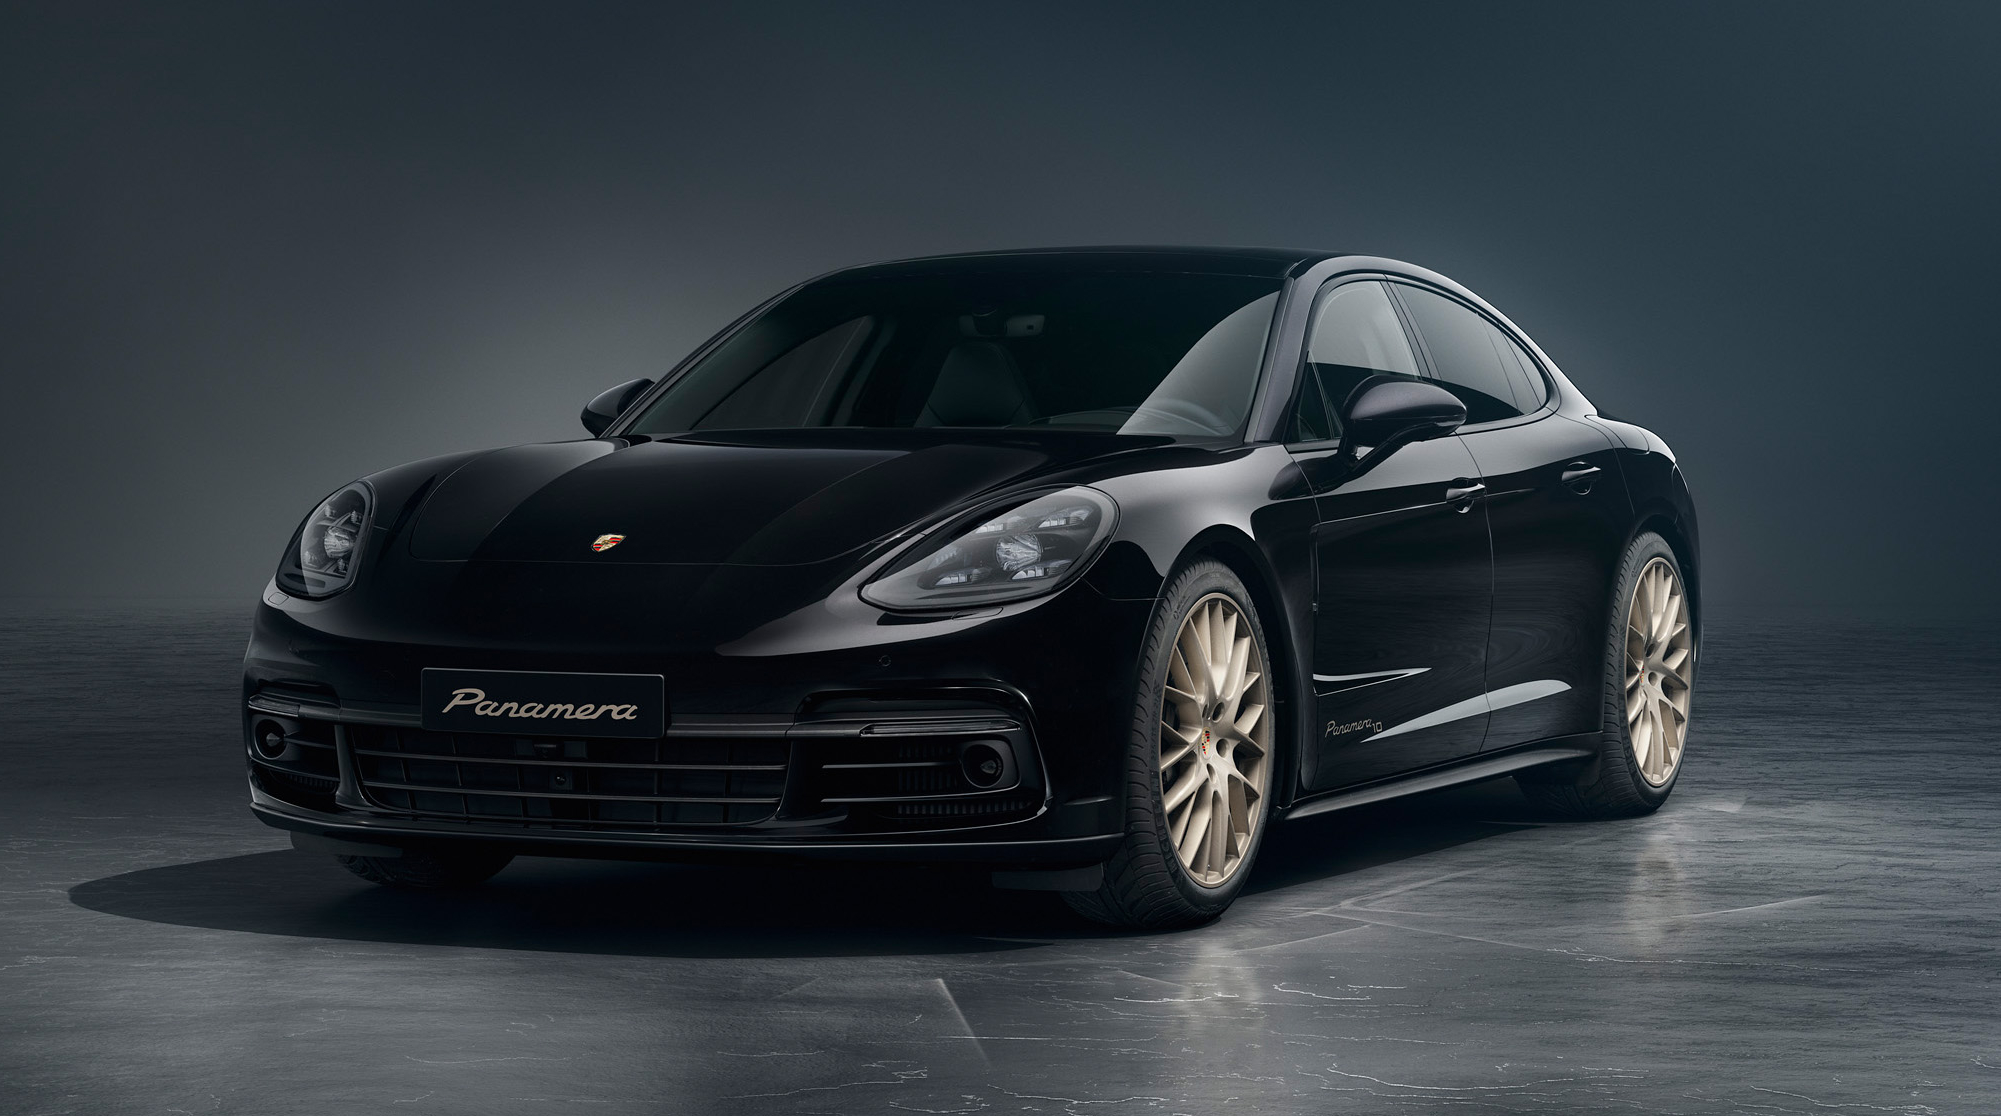 2020 Porsche Panamera 10 Years Edition Top Speed